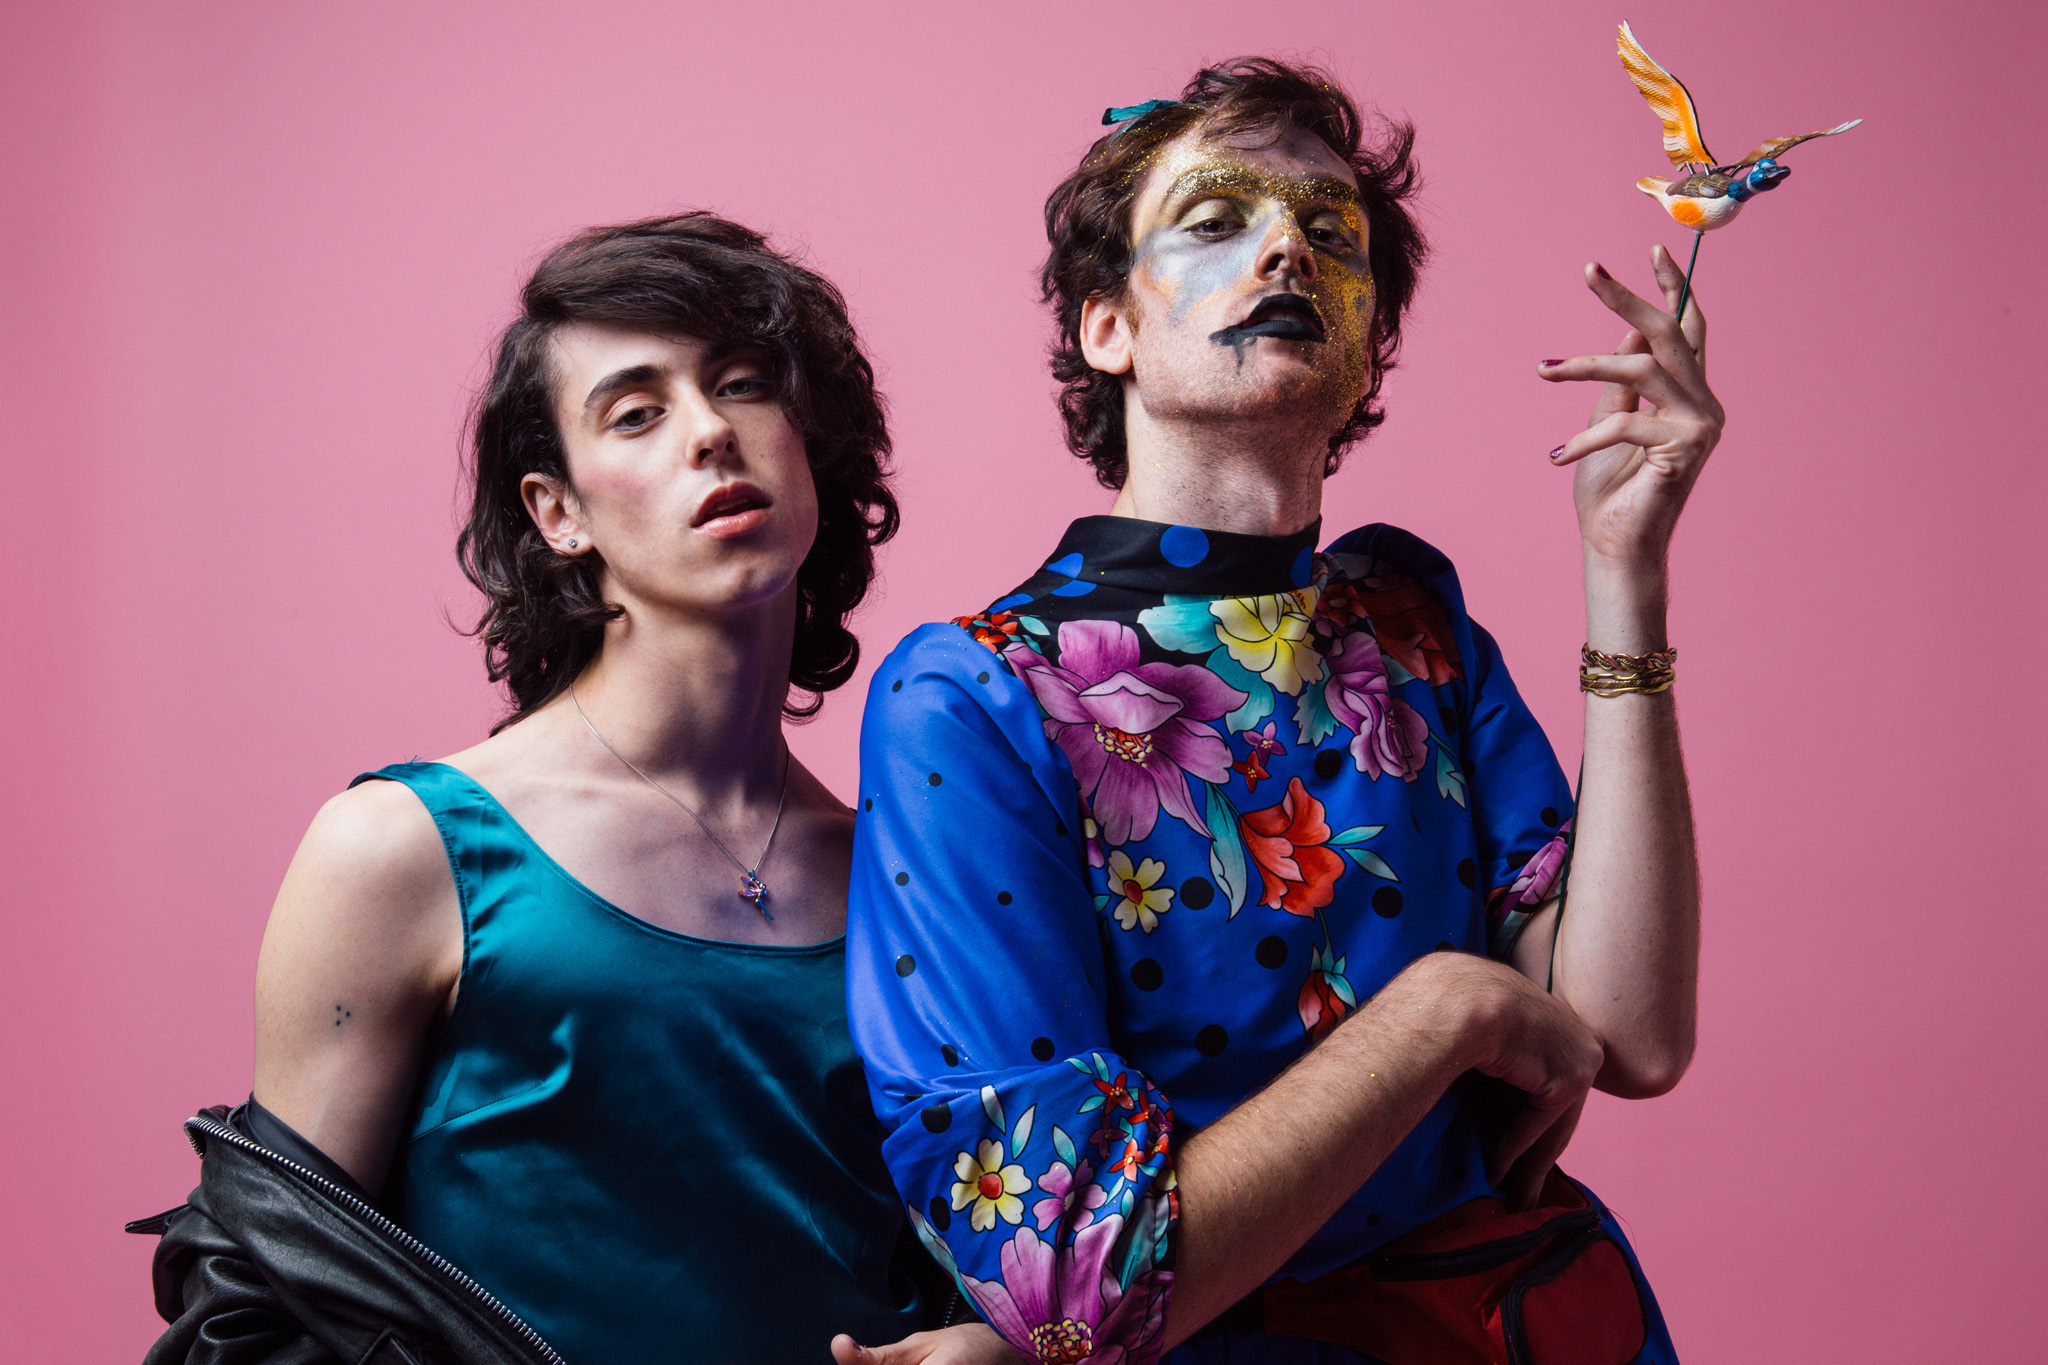 PWR BTTM + Tancred + Fits